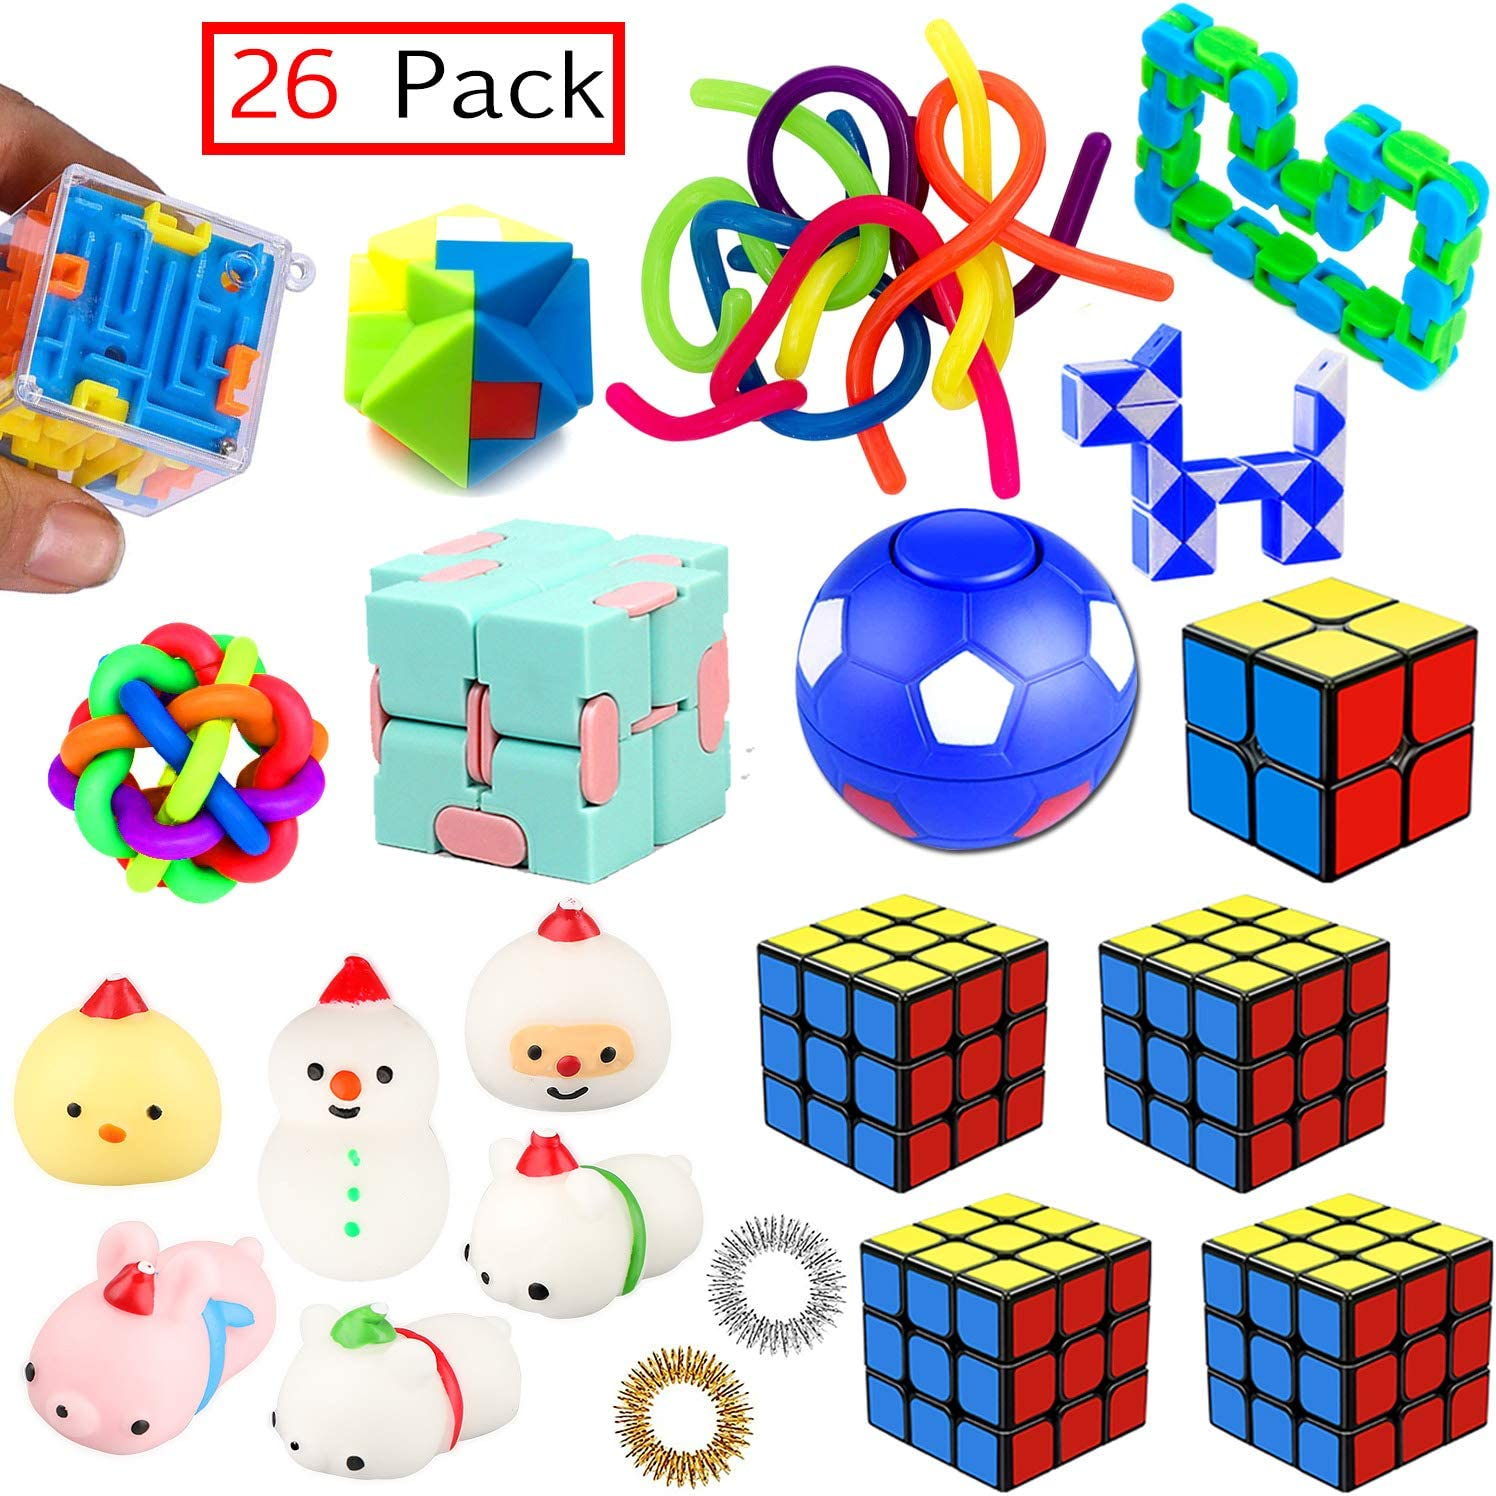 PP PHIMOTA Sensory Toys Set 26 Pack, Stress Relief Fidget Hand Toys for Adults and Kids, Sensory Fidget and Squeeze Widget for Relaxing Therapy - Perfect for ADHD Add Anxiety Autism